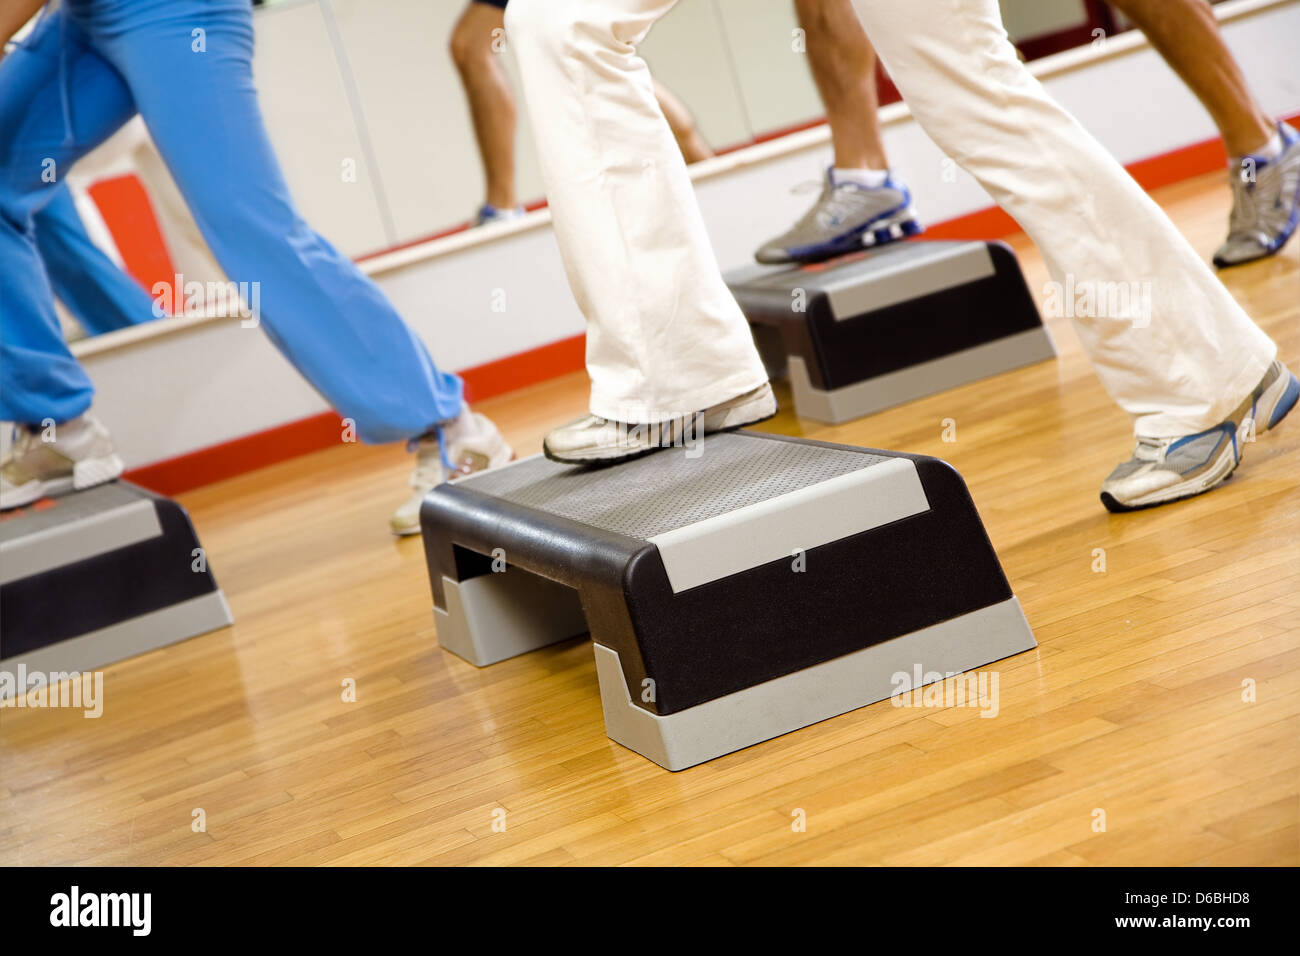 Aerobics Steps Stock Photos Aerobics Steps Stock Images Alamy